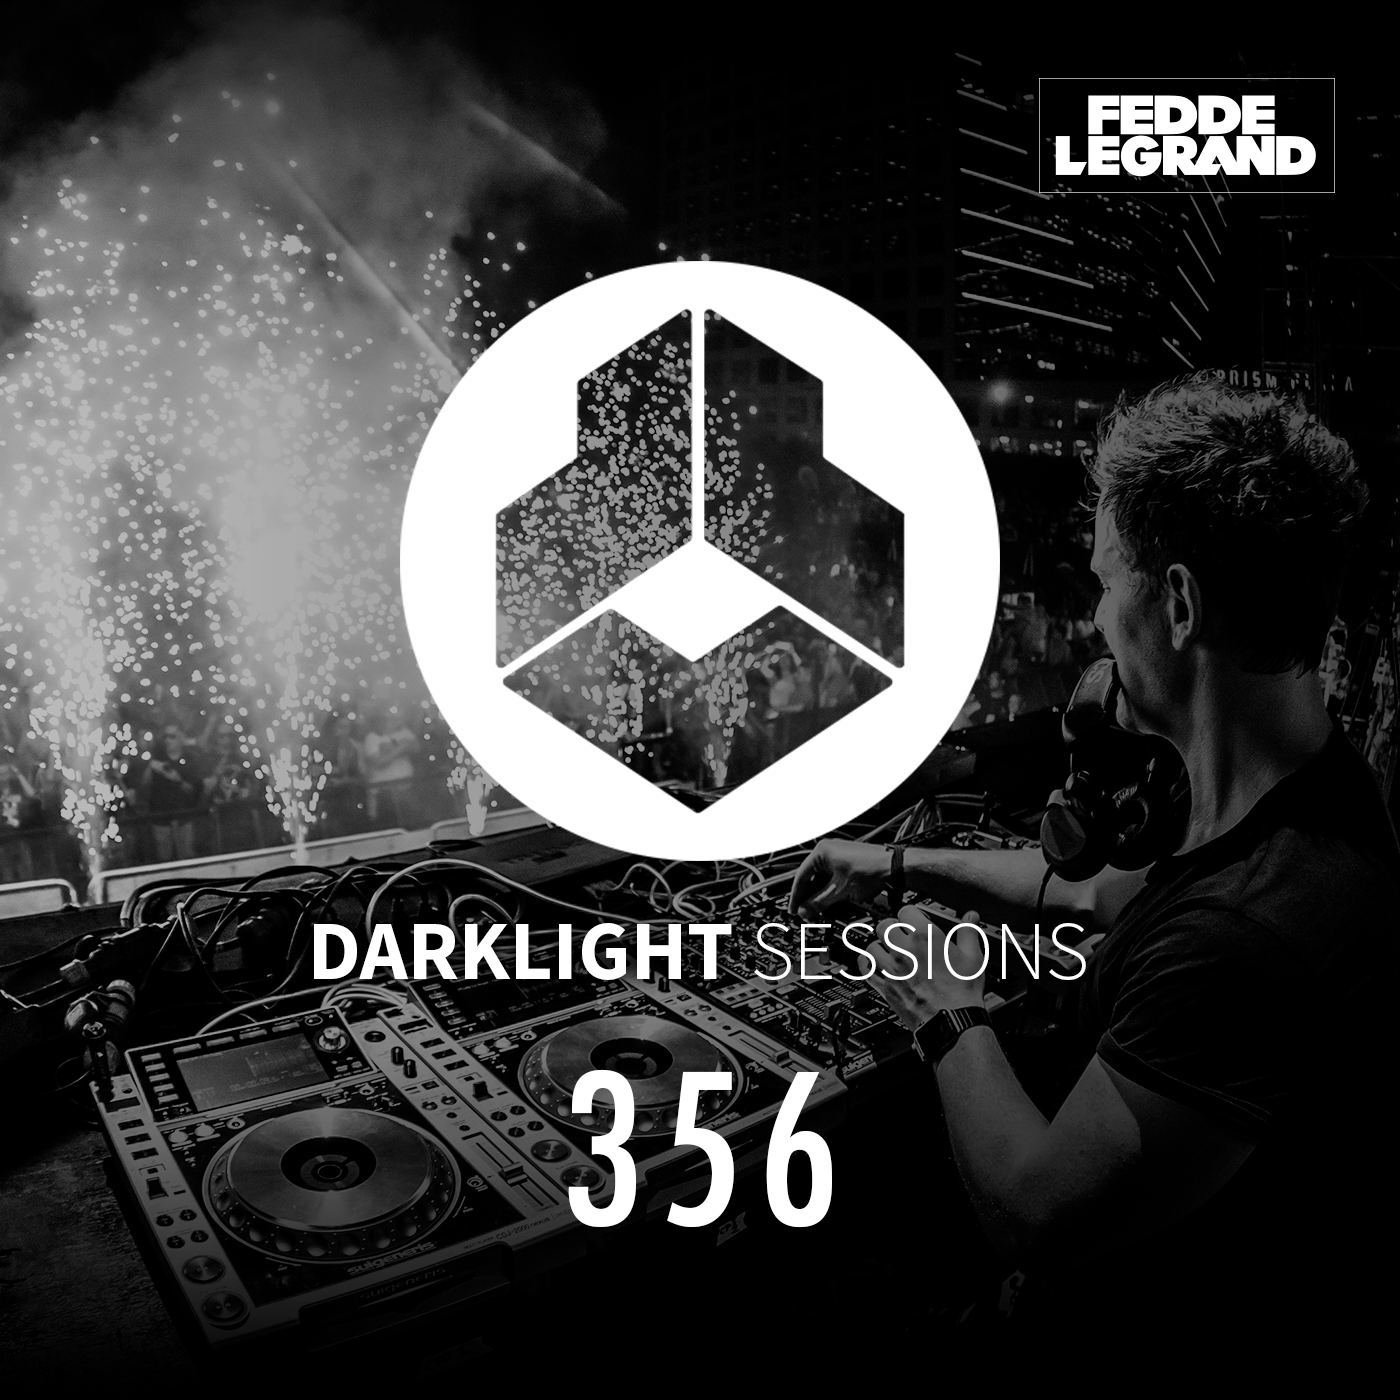 Darklight Sessions 356